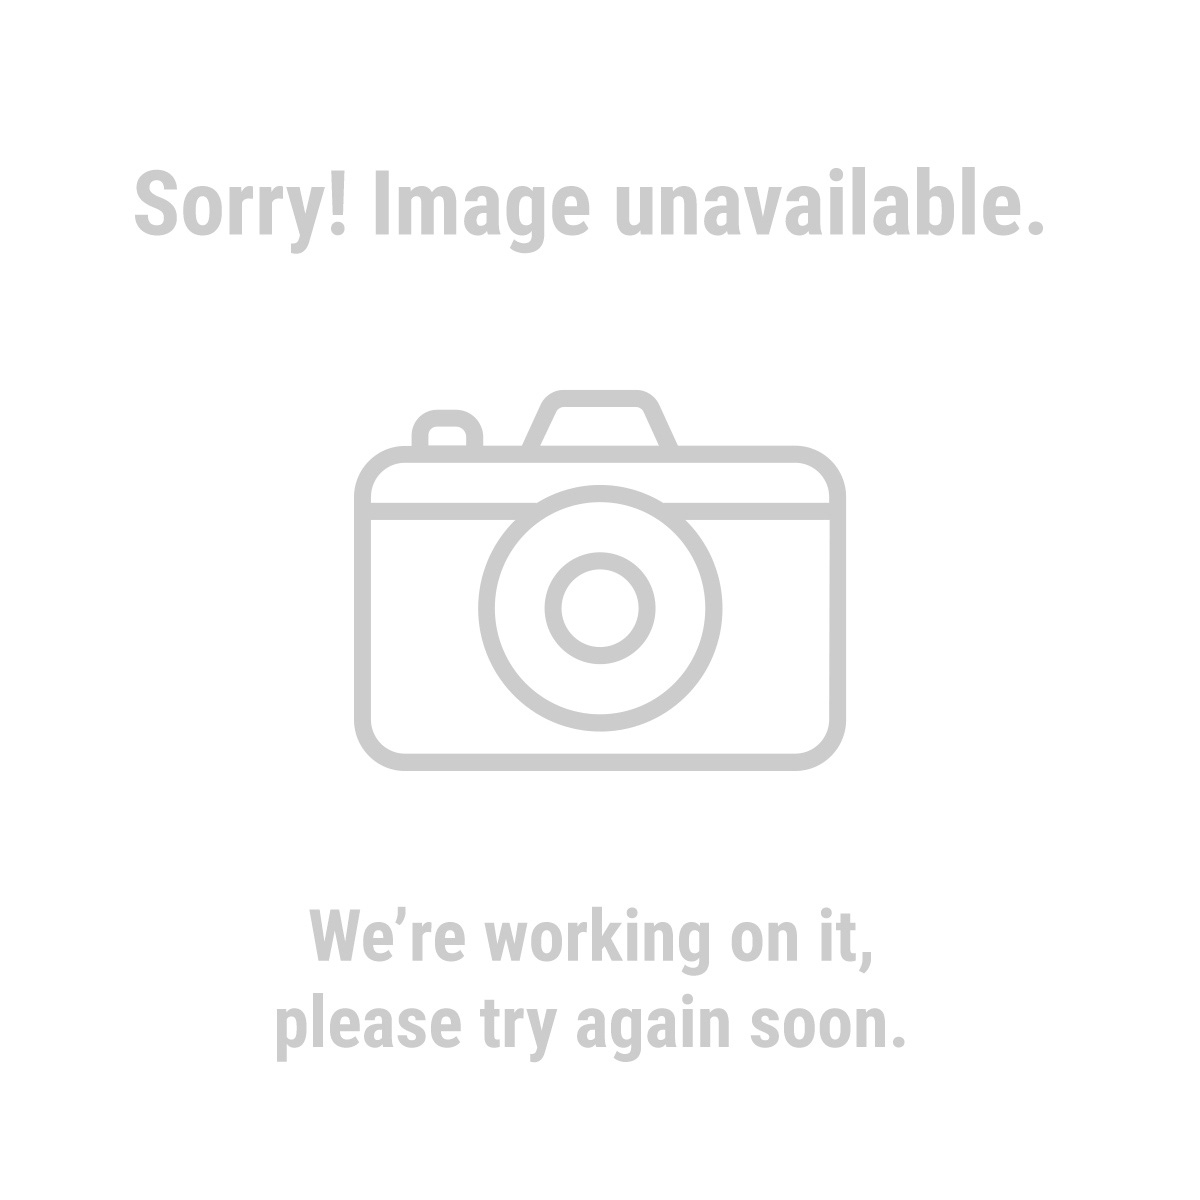 Western Safety 68511 Pack of 50 Black Nitrile Gloves, Size Large